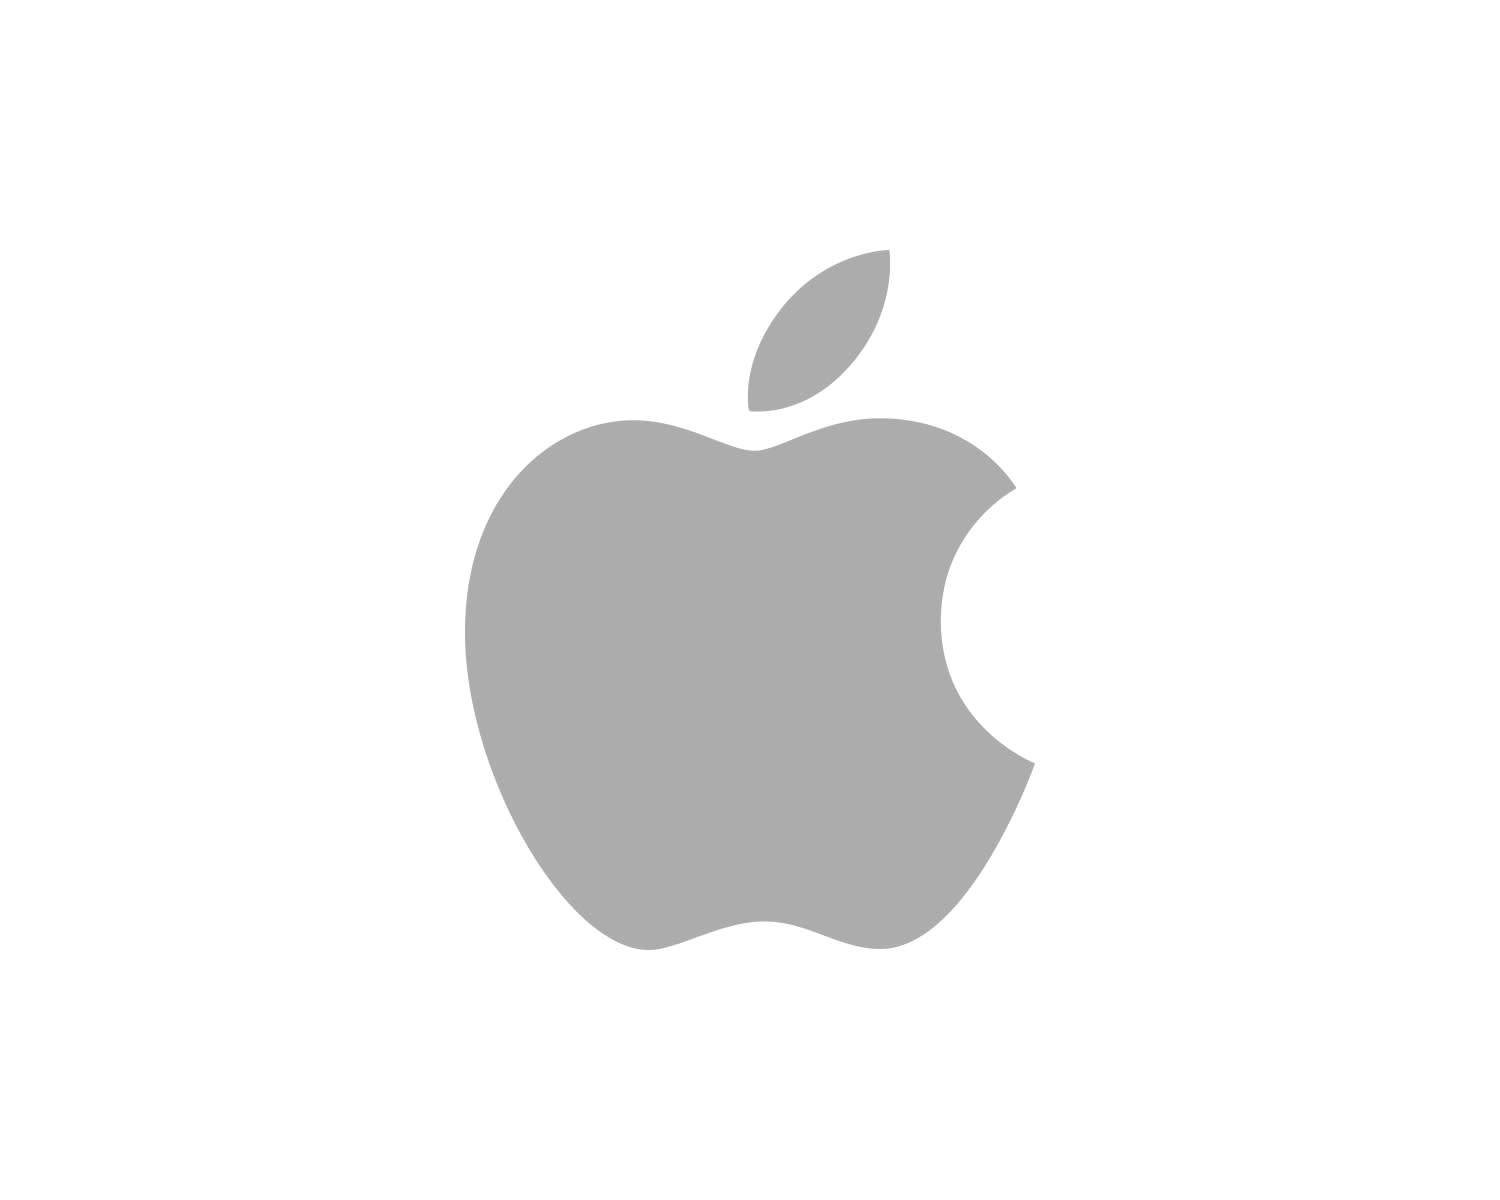 Apple.com (Various)